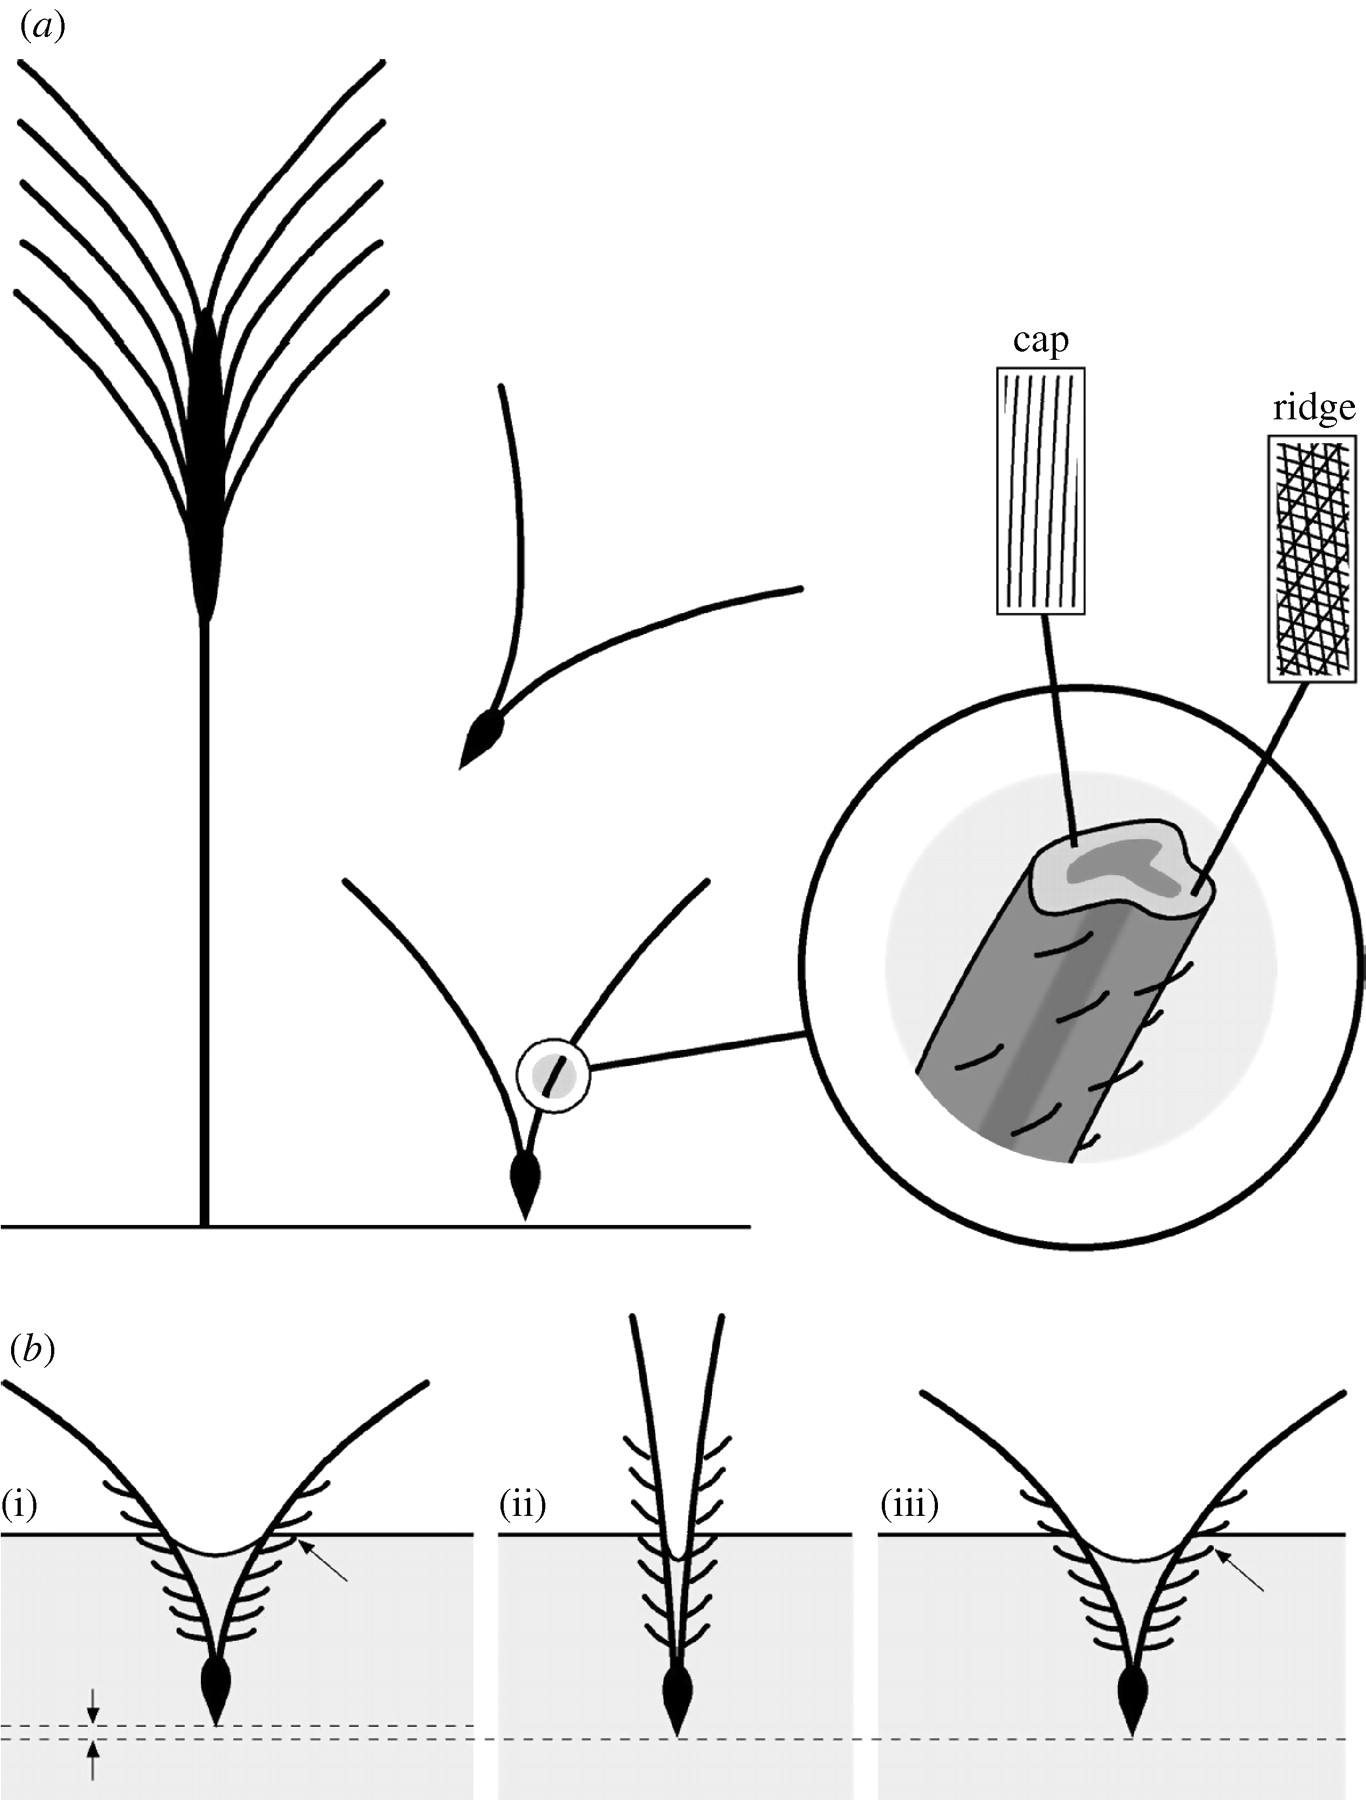 Wheat plant drawing at getdrawings free for personal use wheat 1366x1800 actuation systems in plants as prototypes for bioinspired devices ccuart Gallery